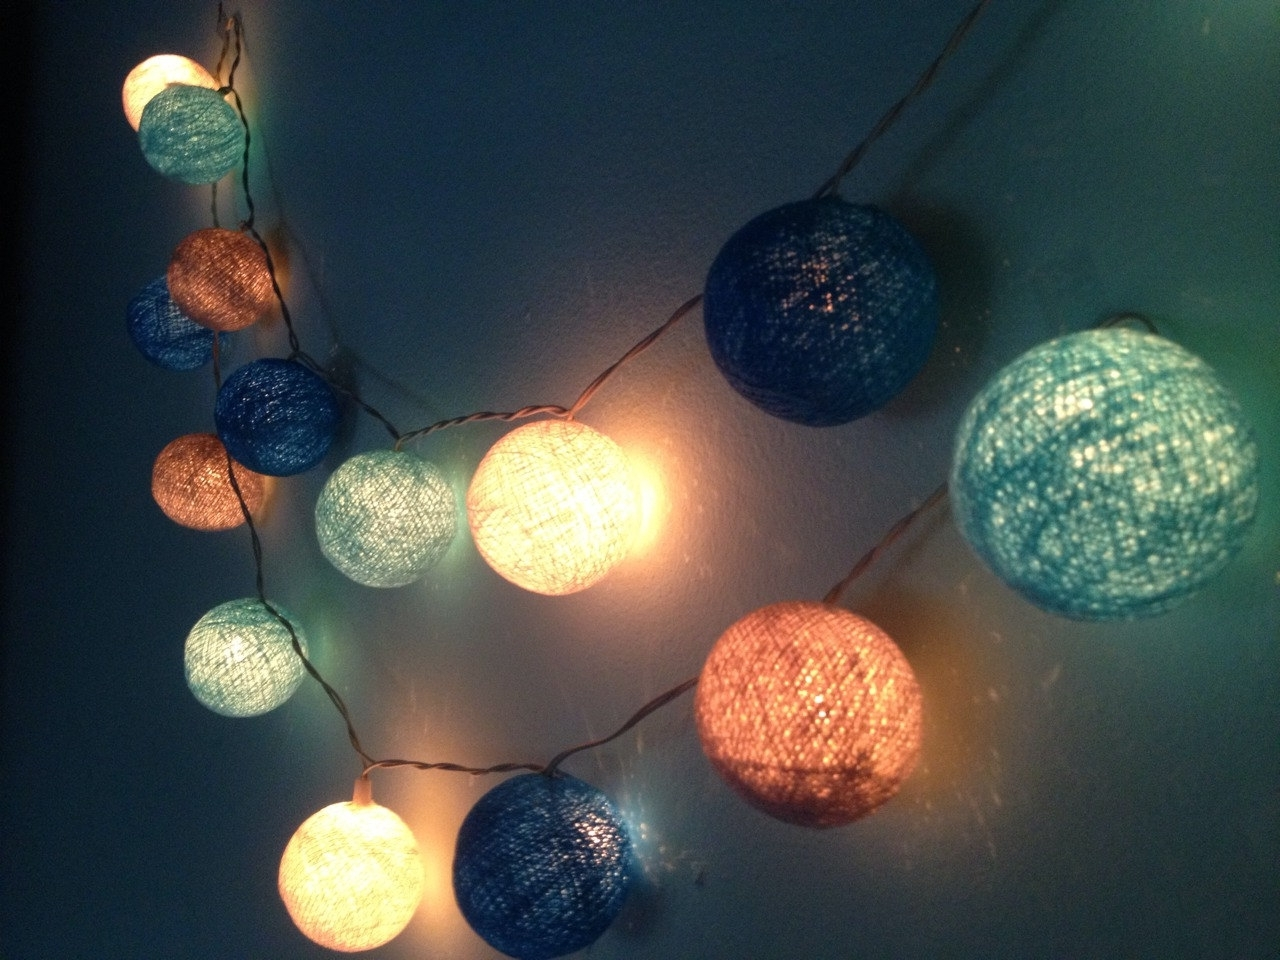 Widely Used Contemporary Outdoor String Lights At Target Inside Lighting Decor Ideas. Bedroom Lighting Decor Ideas – Dumba (View 20 of 20)